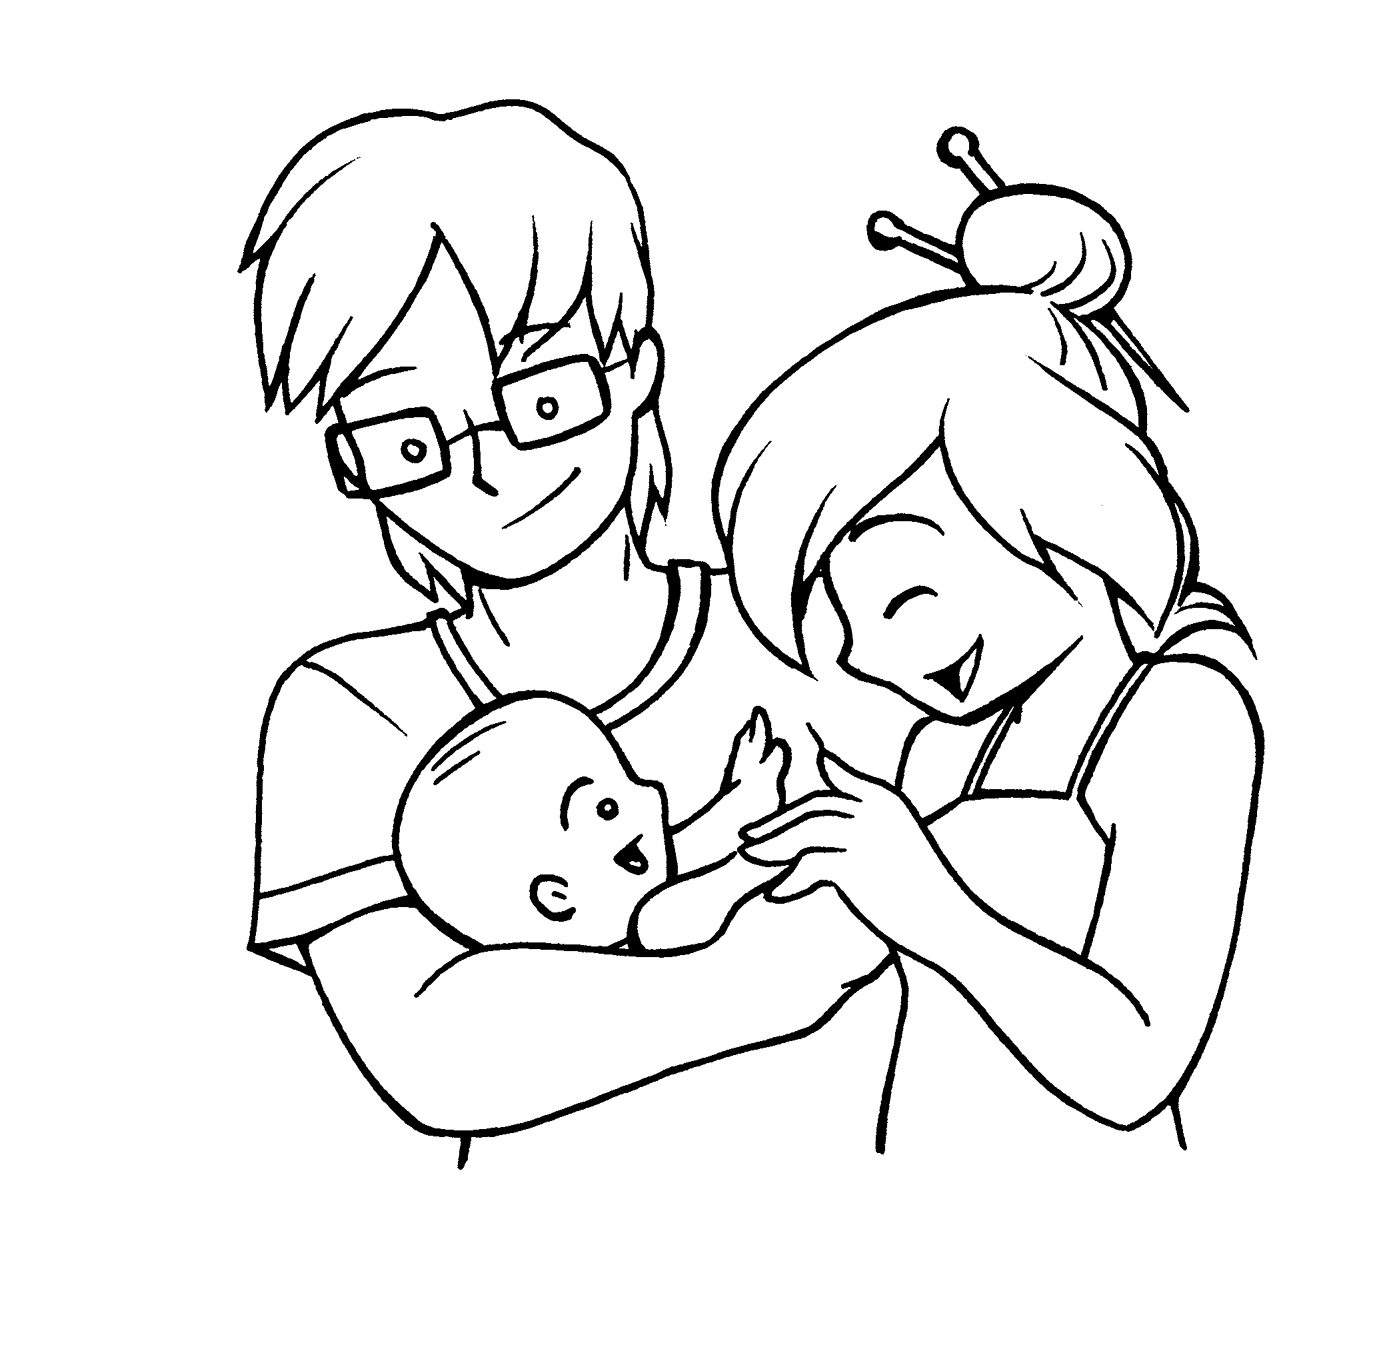 preschool body parts coloring pages - photo#24